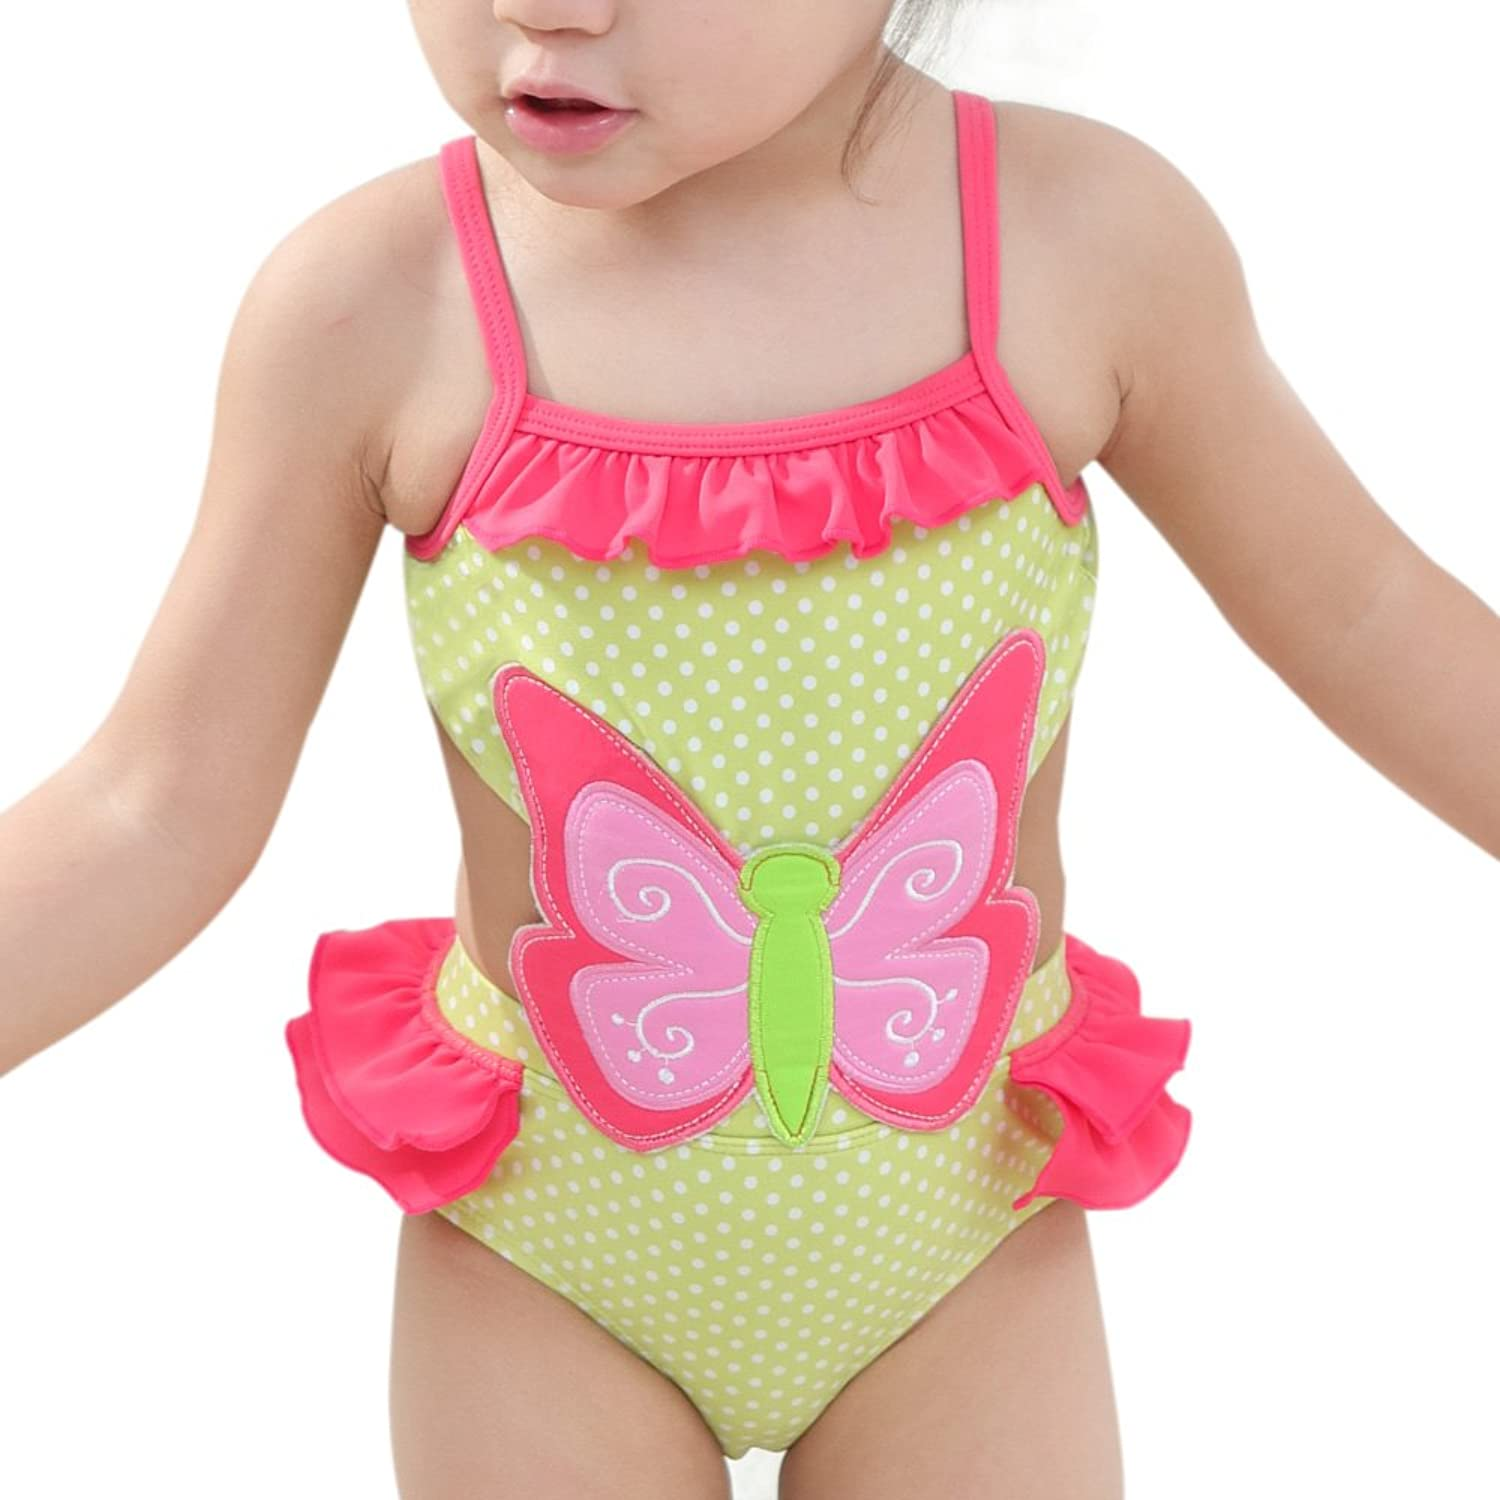 Saidi Girls One Piece Swimsuit Hollow-Out Butterfly Swimwear Yellow Pink (S8)